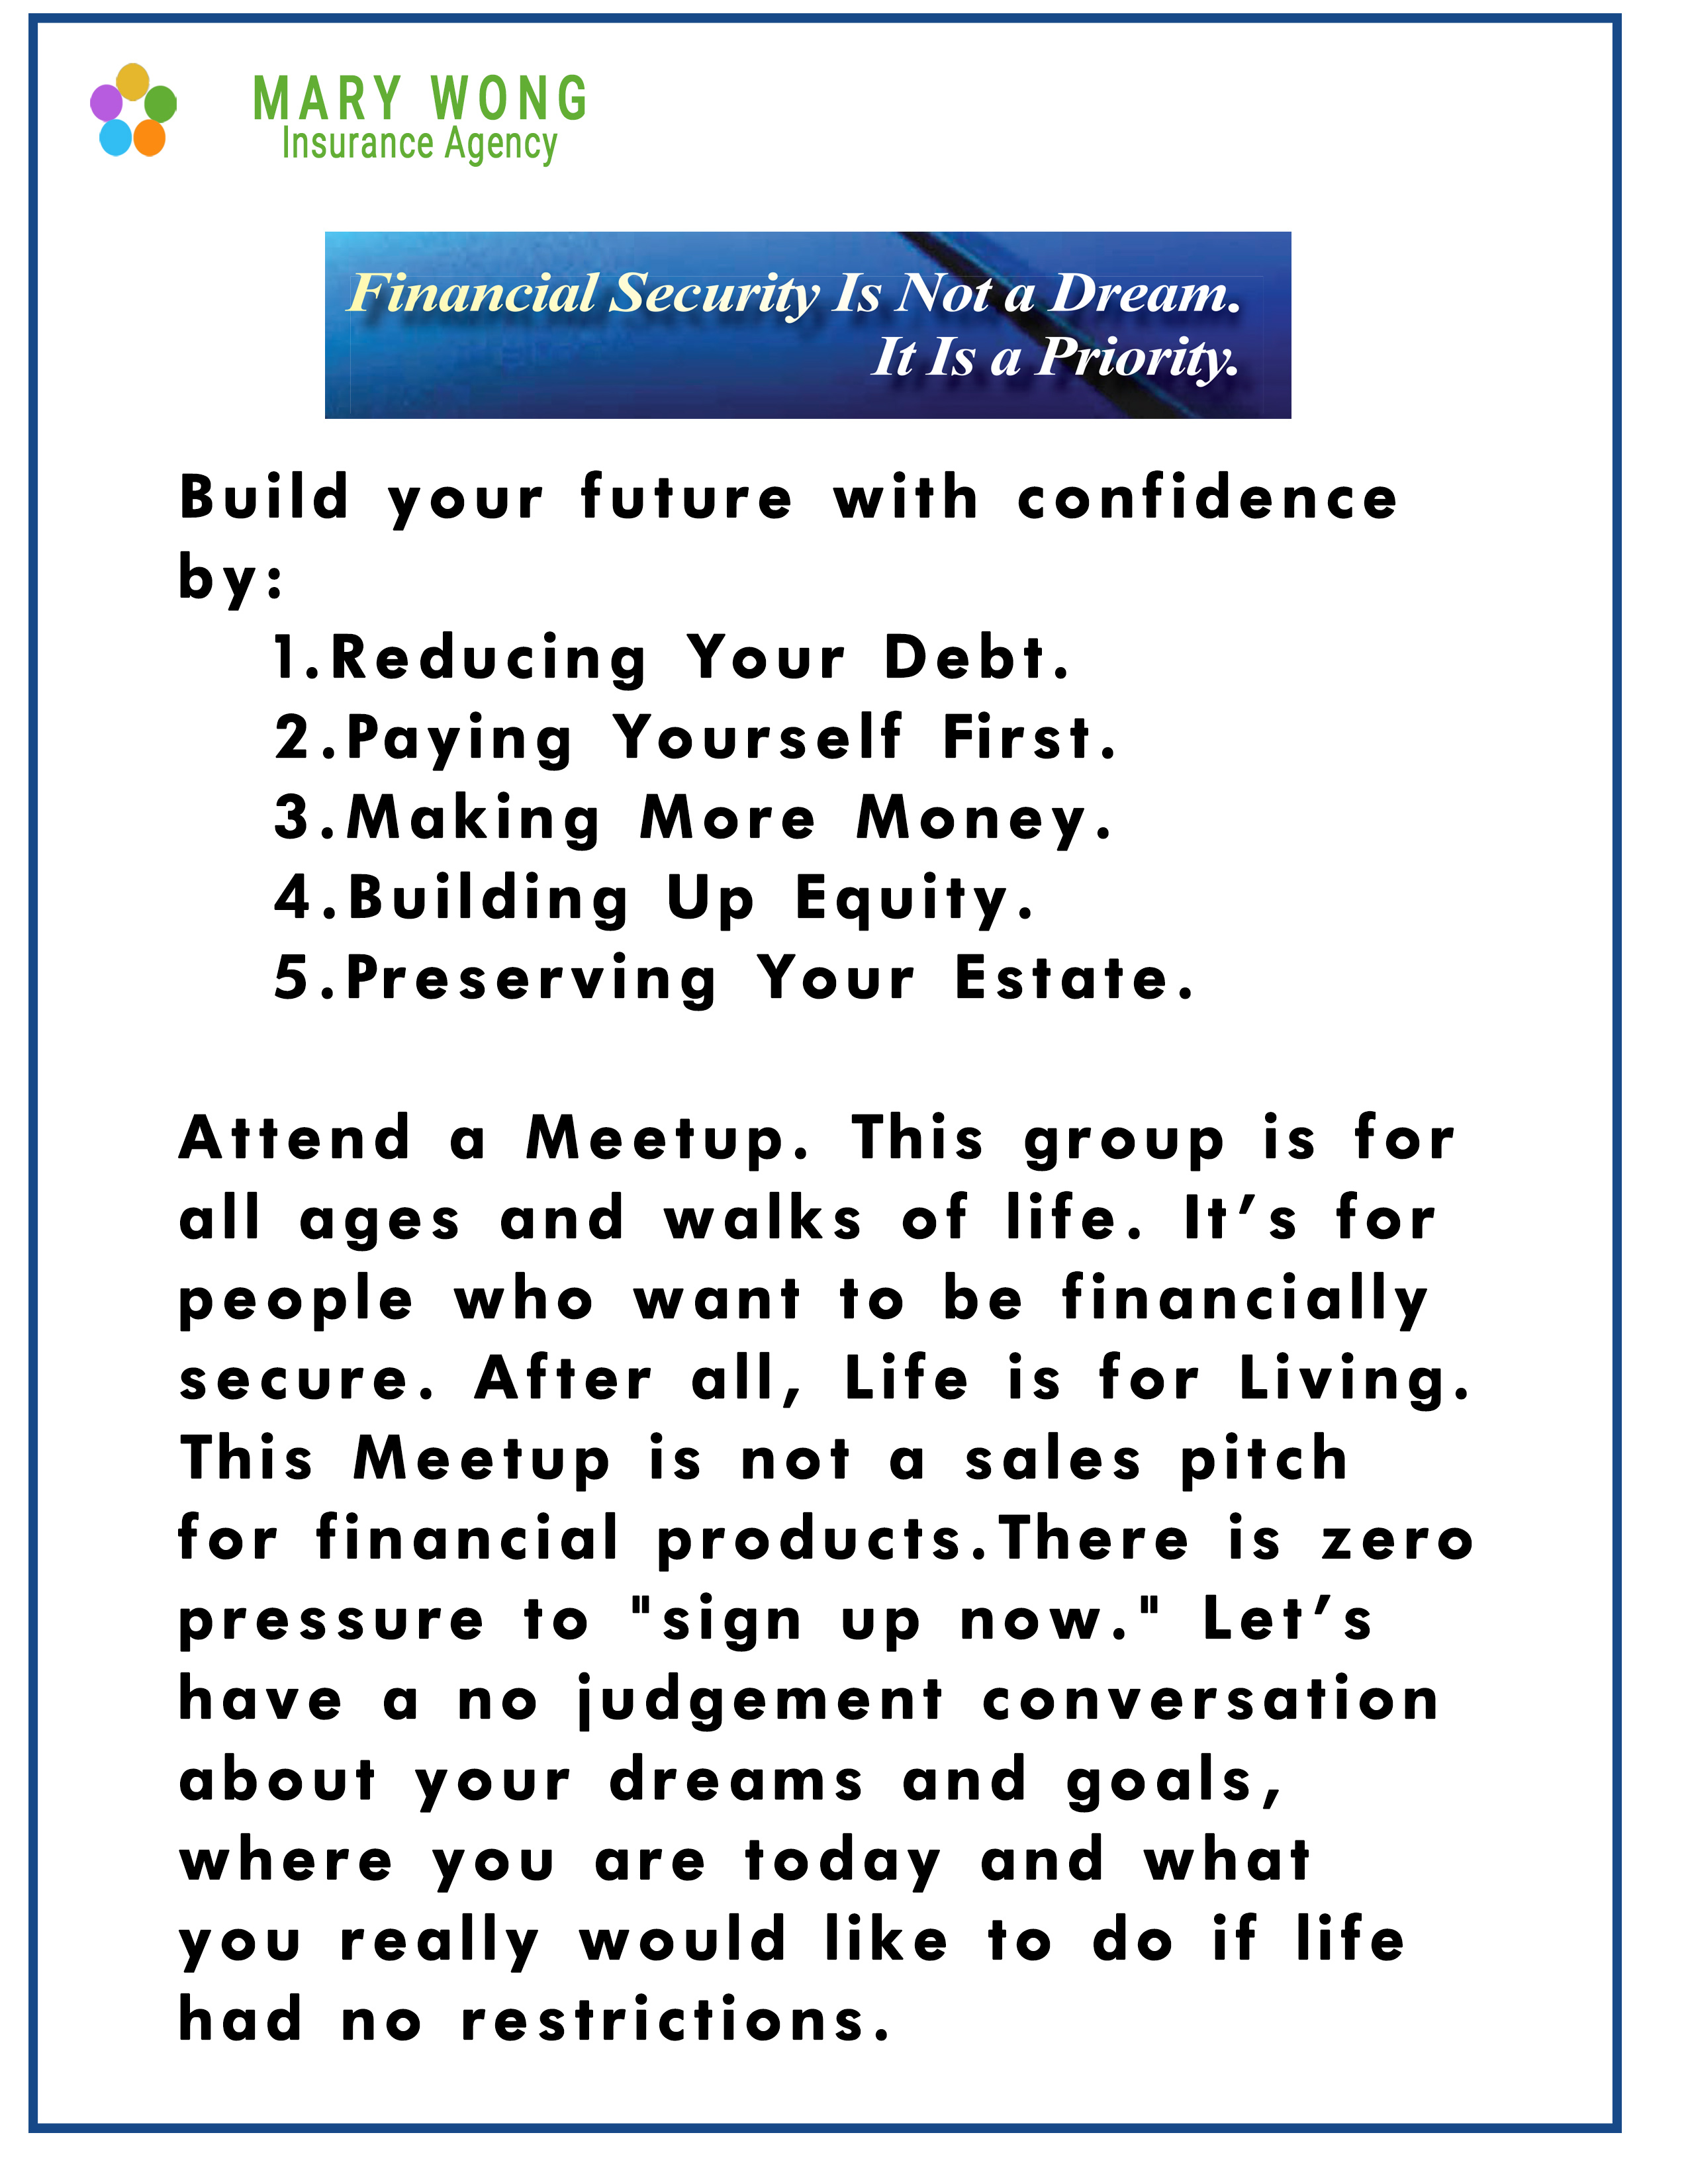 Invest in Yourself on Saturday- Find, Create, Grow and Keep Your Wealth with knowledge and education offered by Mary Wong Insurance Services